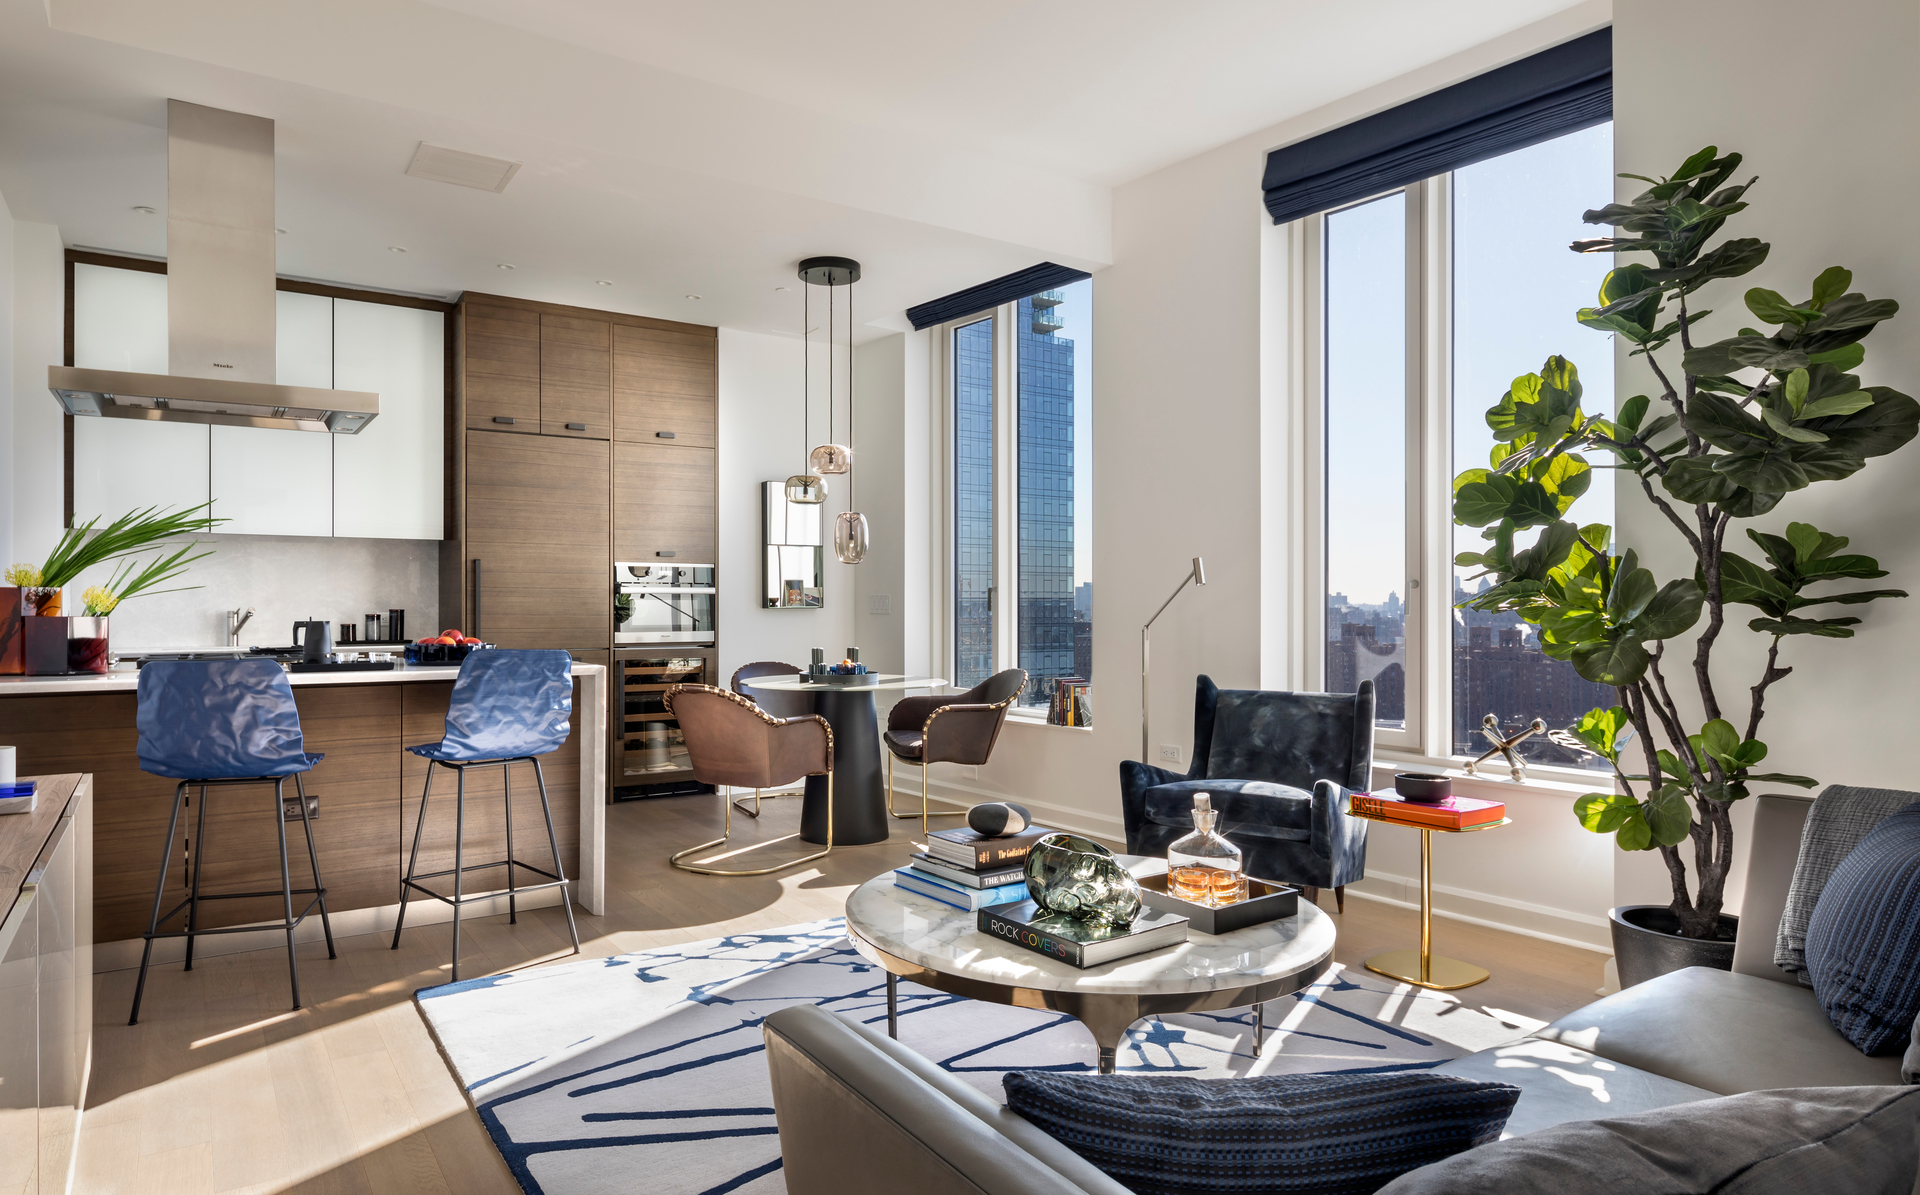 Natural light fills the living area in an apartment unit at One Hudson Yards in New York, New York. To execute the vision of the space, Andre Kikoski chose unique materials from artisans and craftsman all over the world and bespoke products from the finest manufacturers in the industry — including a collaboration with KOHLER on bathroom products.